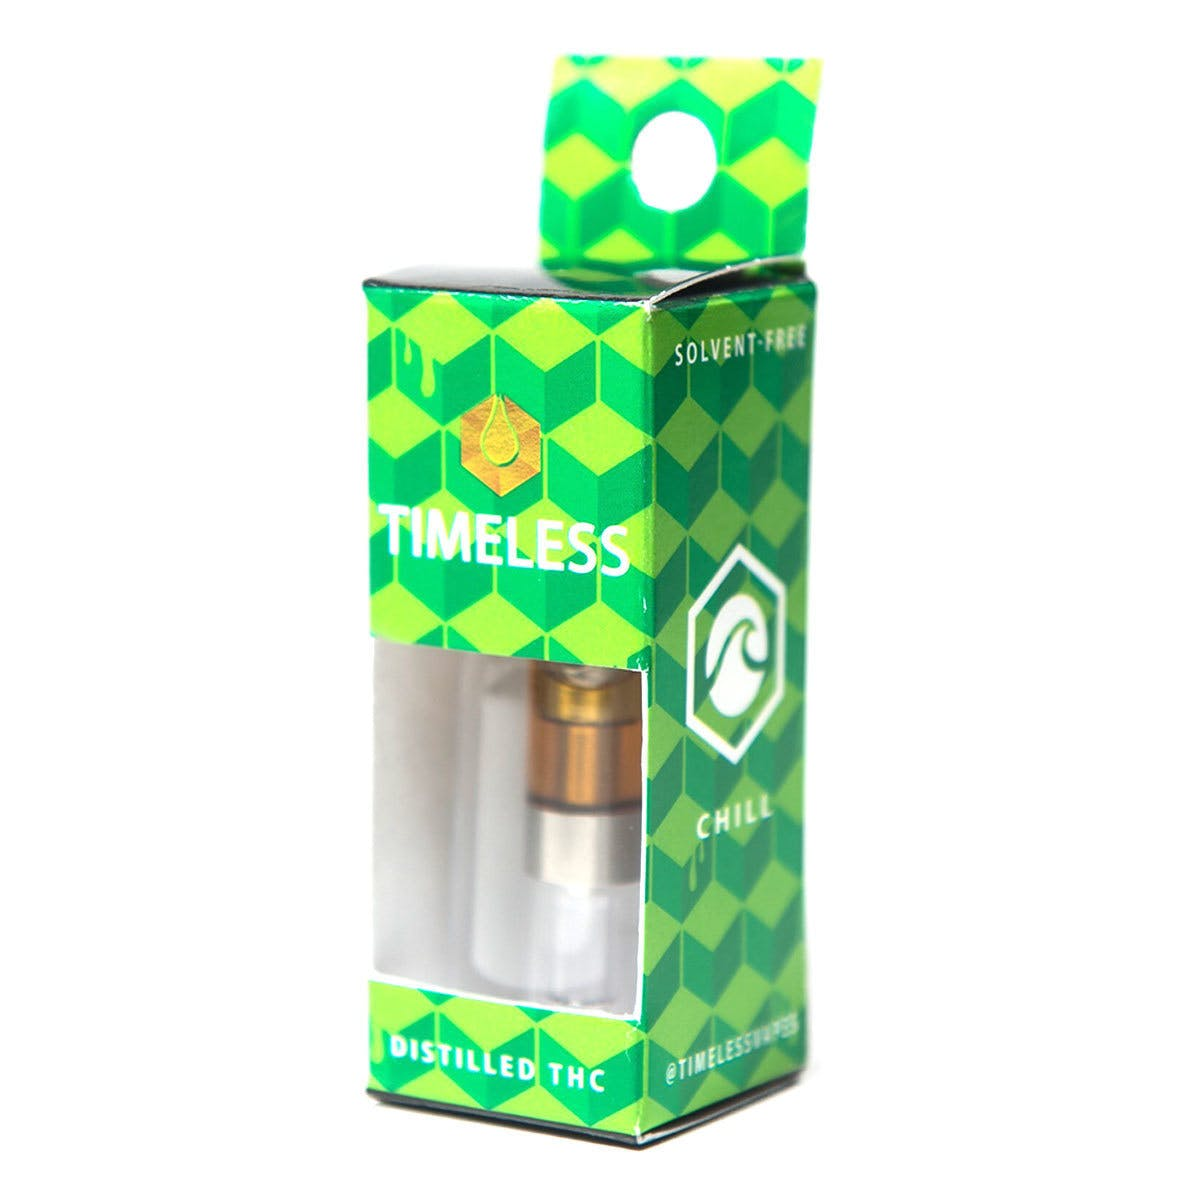 concentrate-timeless-vapes-500mg-zkittles-vape-cartridge-chill